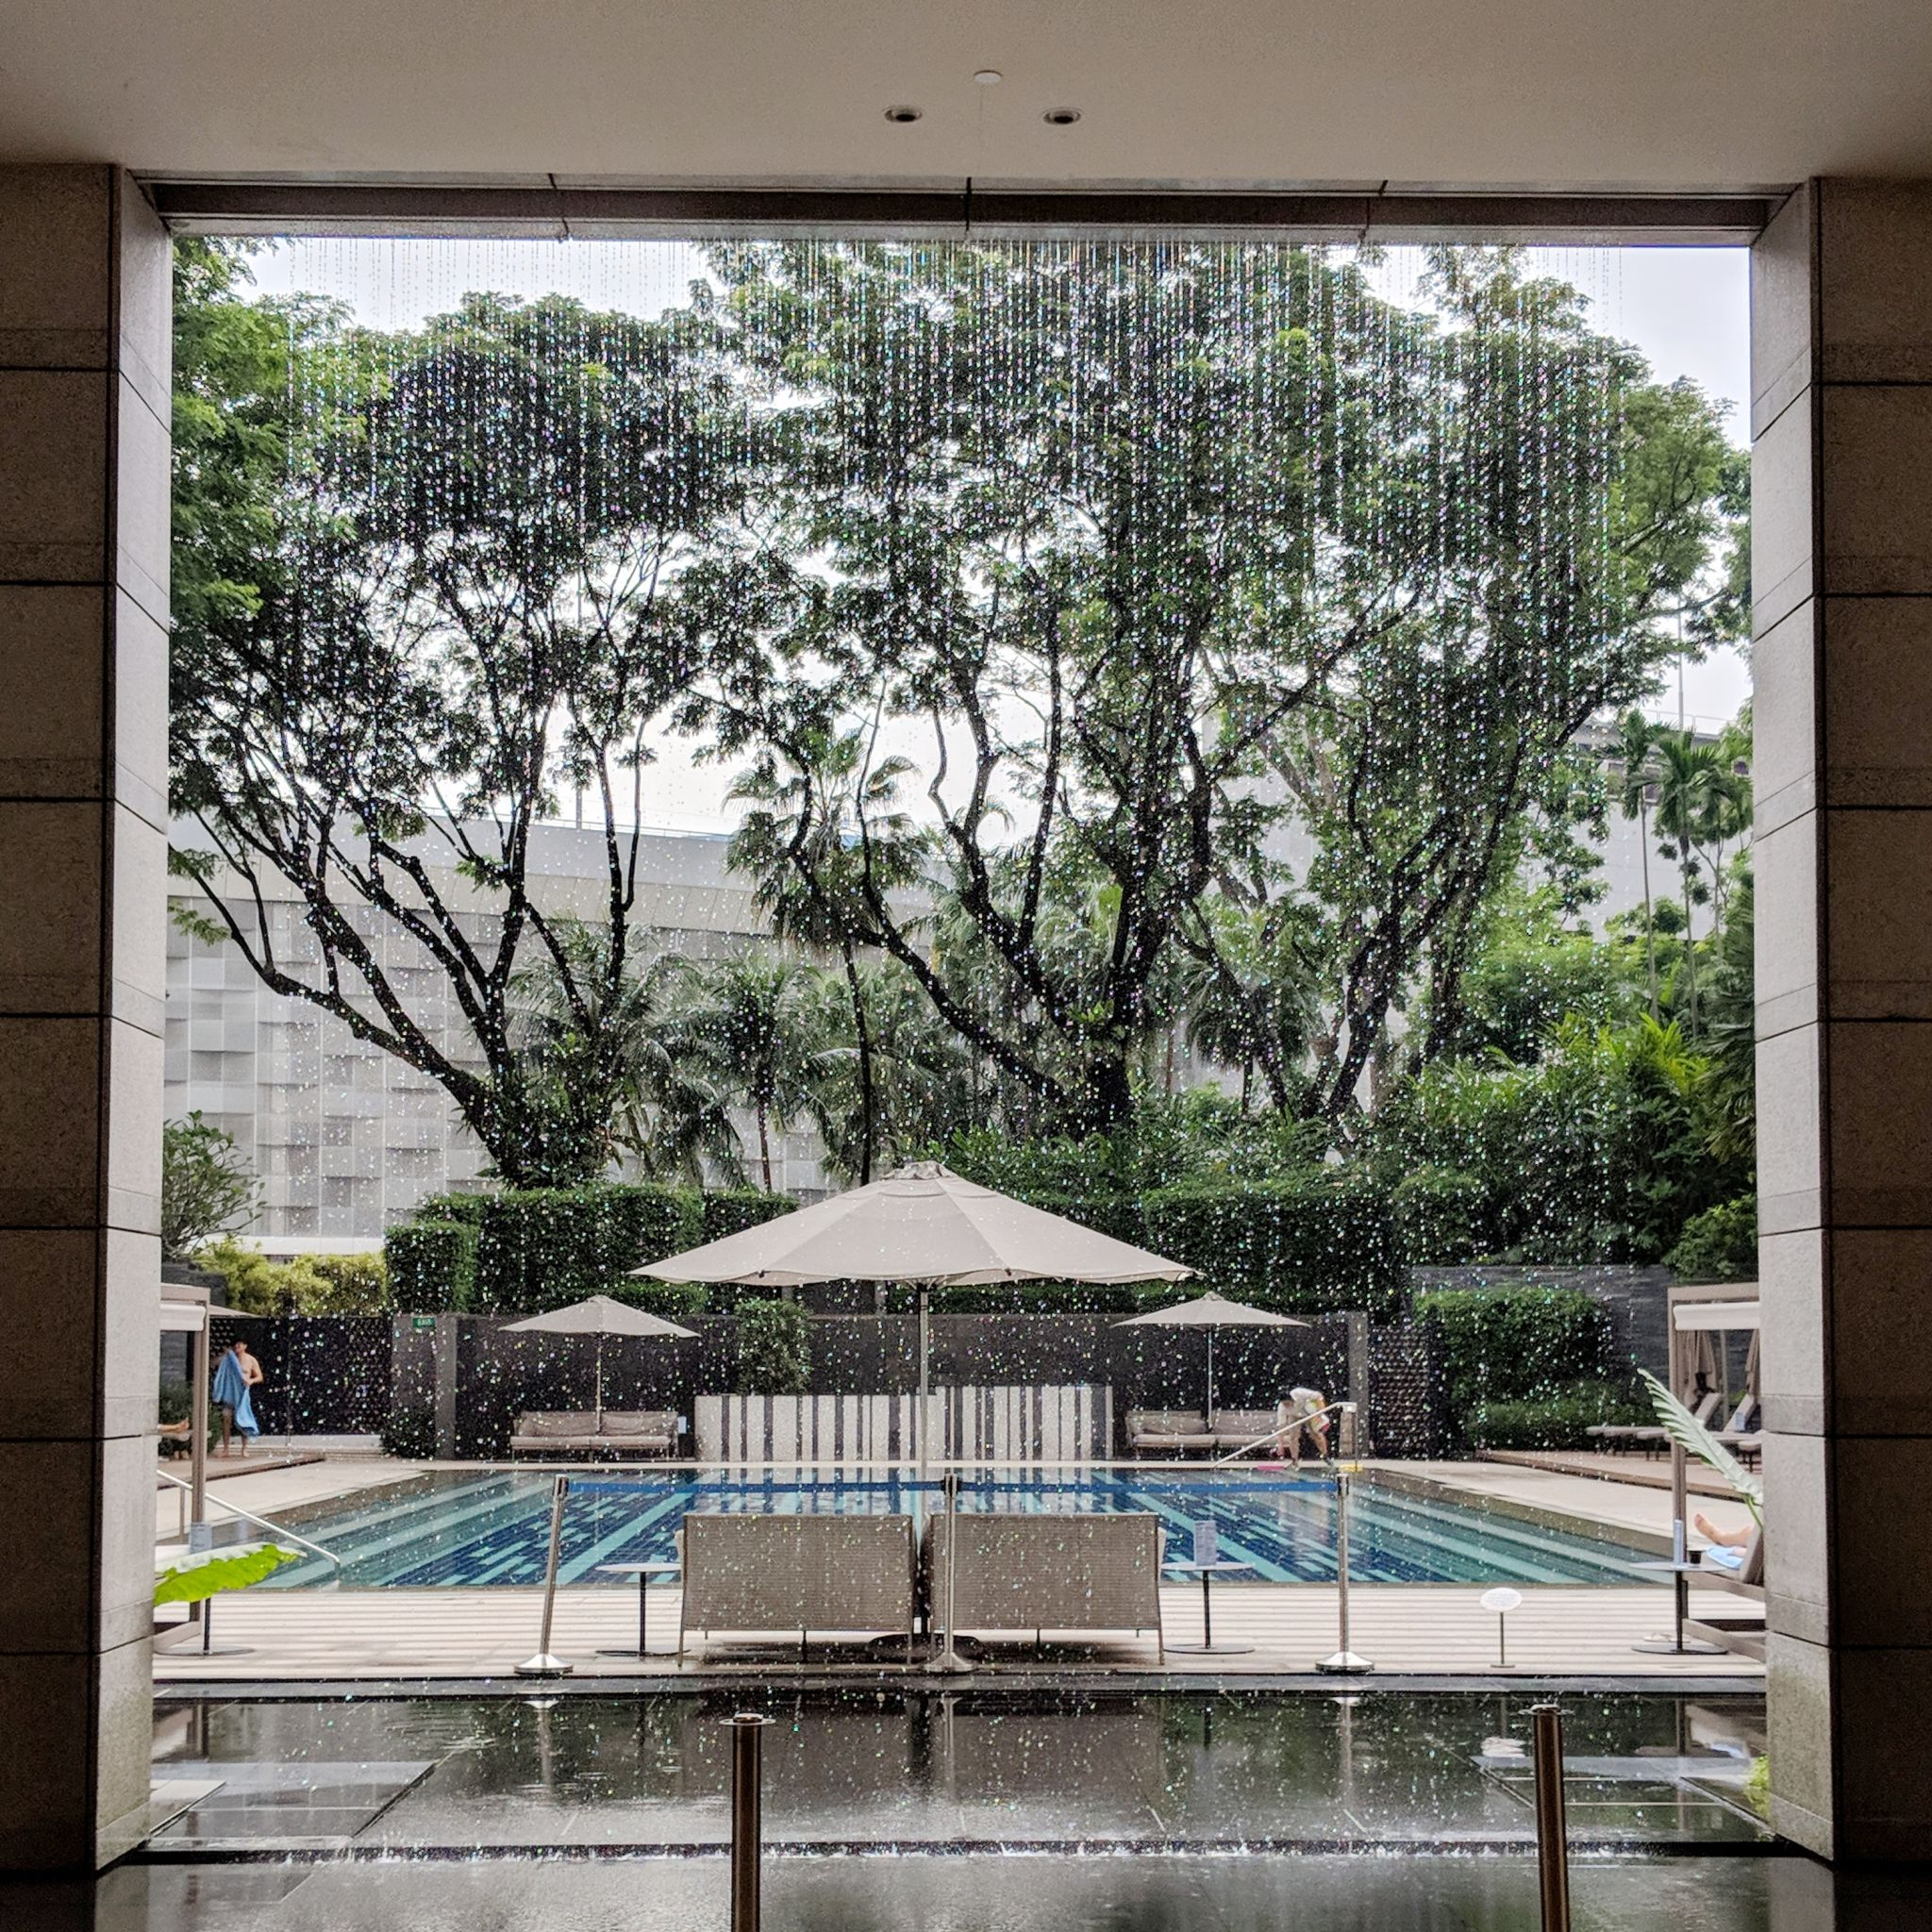 Hotel Review: The Ritz-Carlton, Millenia Singapore (One